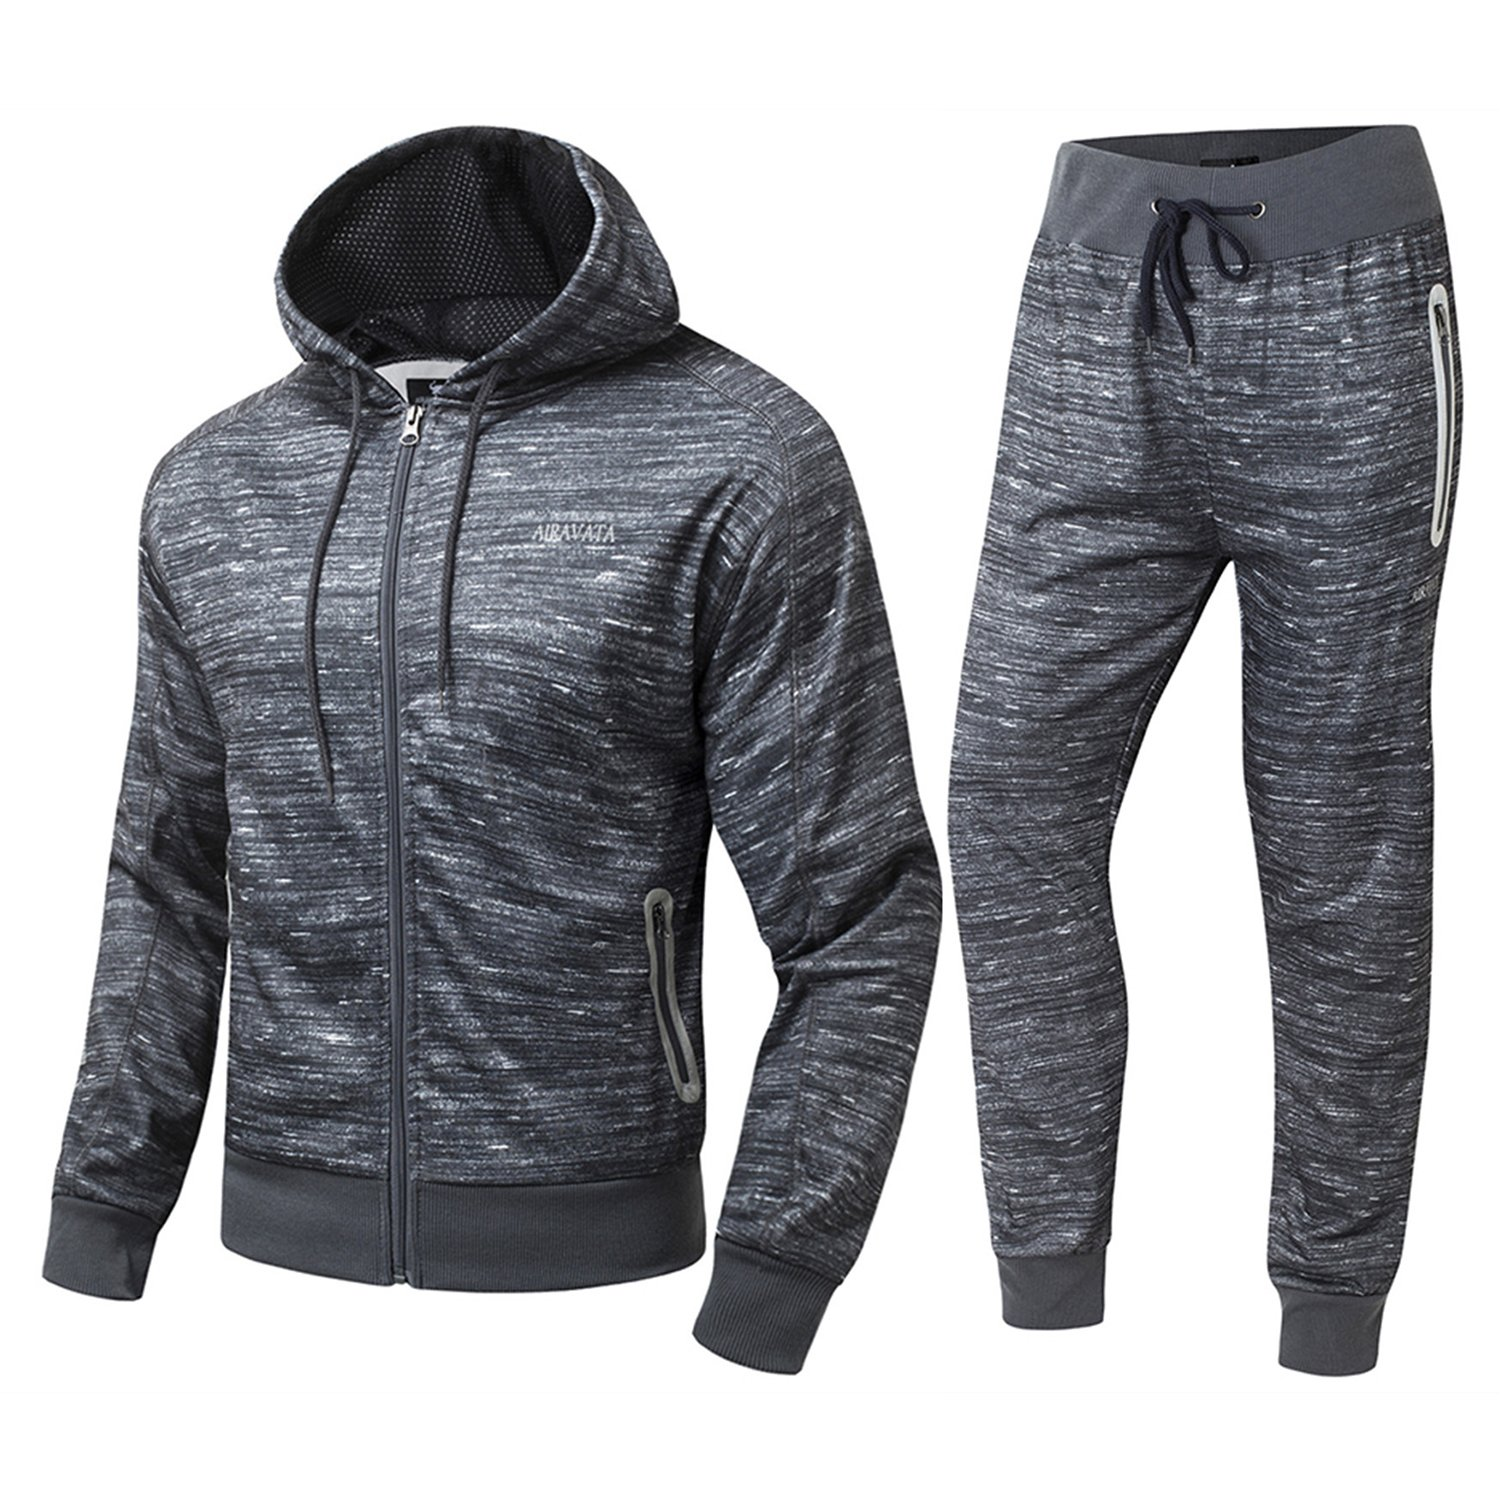 FZDX Men's Casual Athletic Sport Workout Hooded Zipper Tracksuit Sweat Set